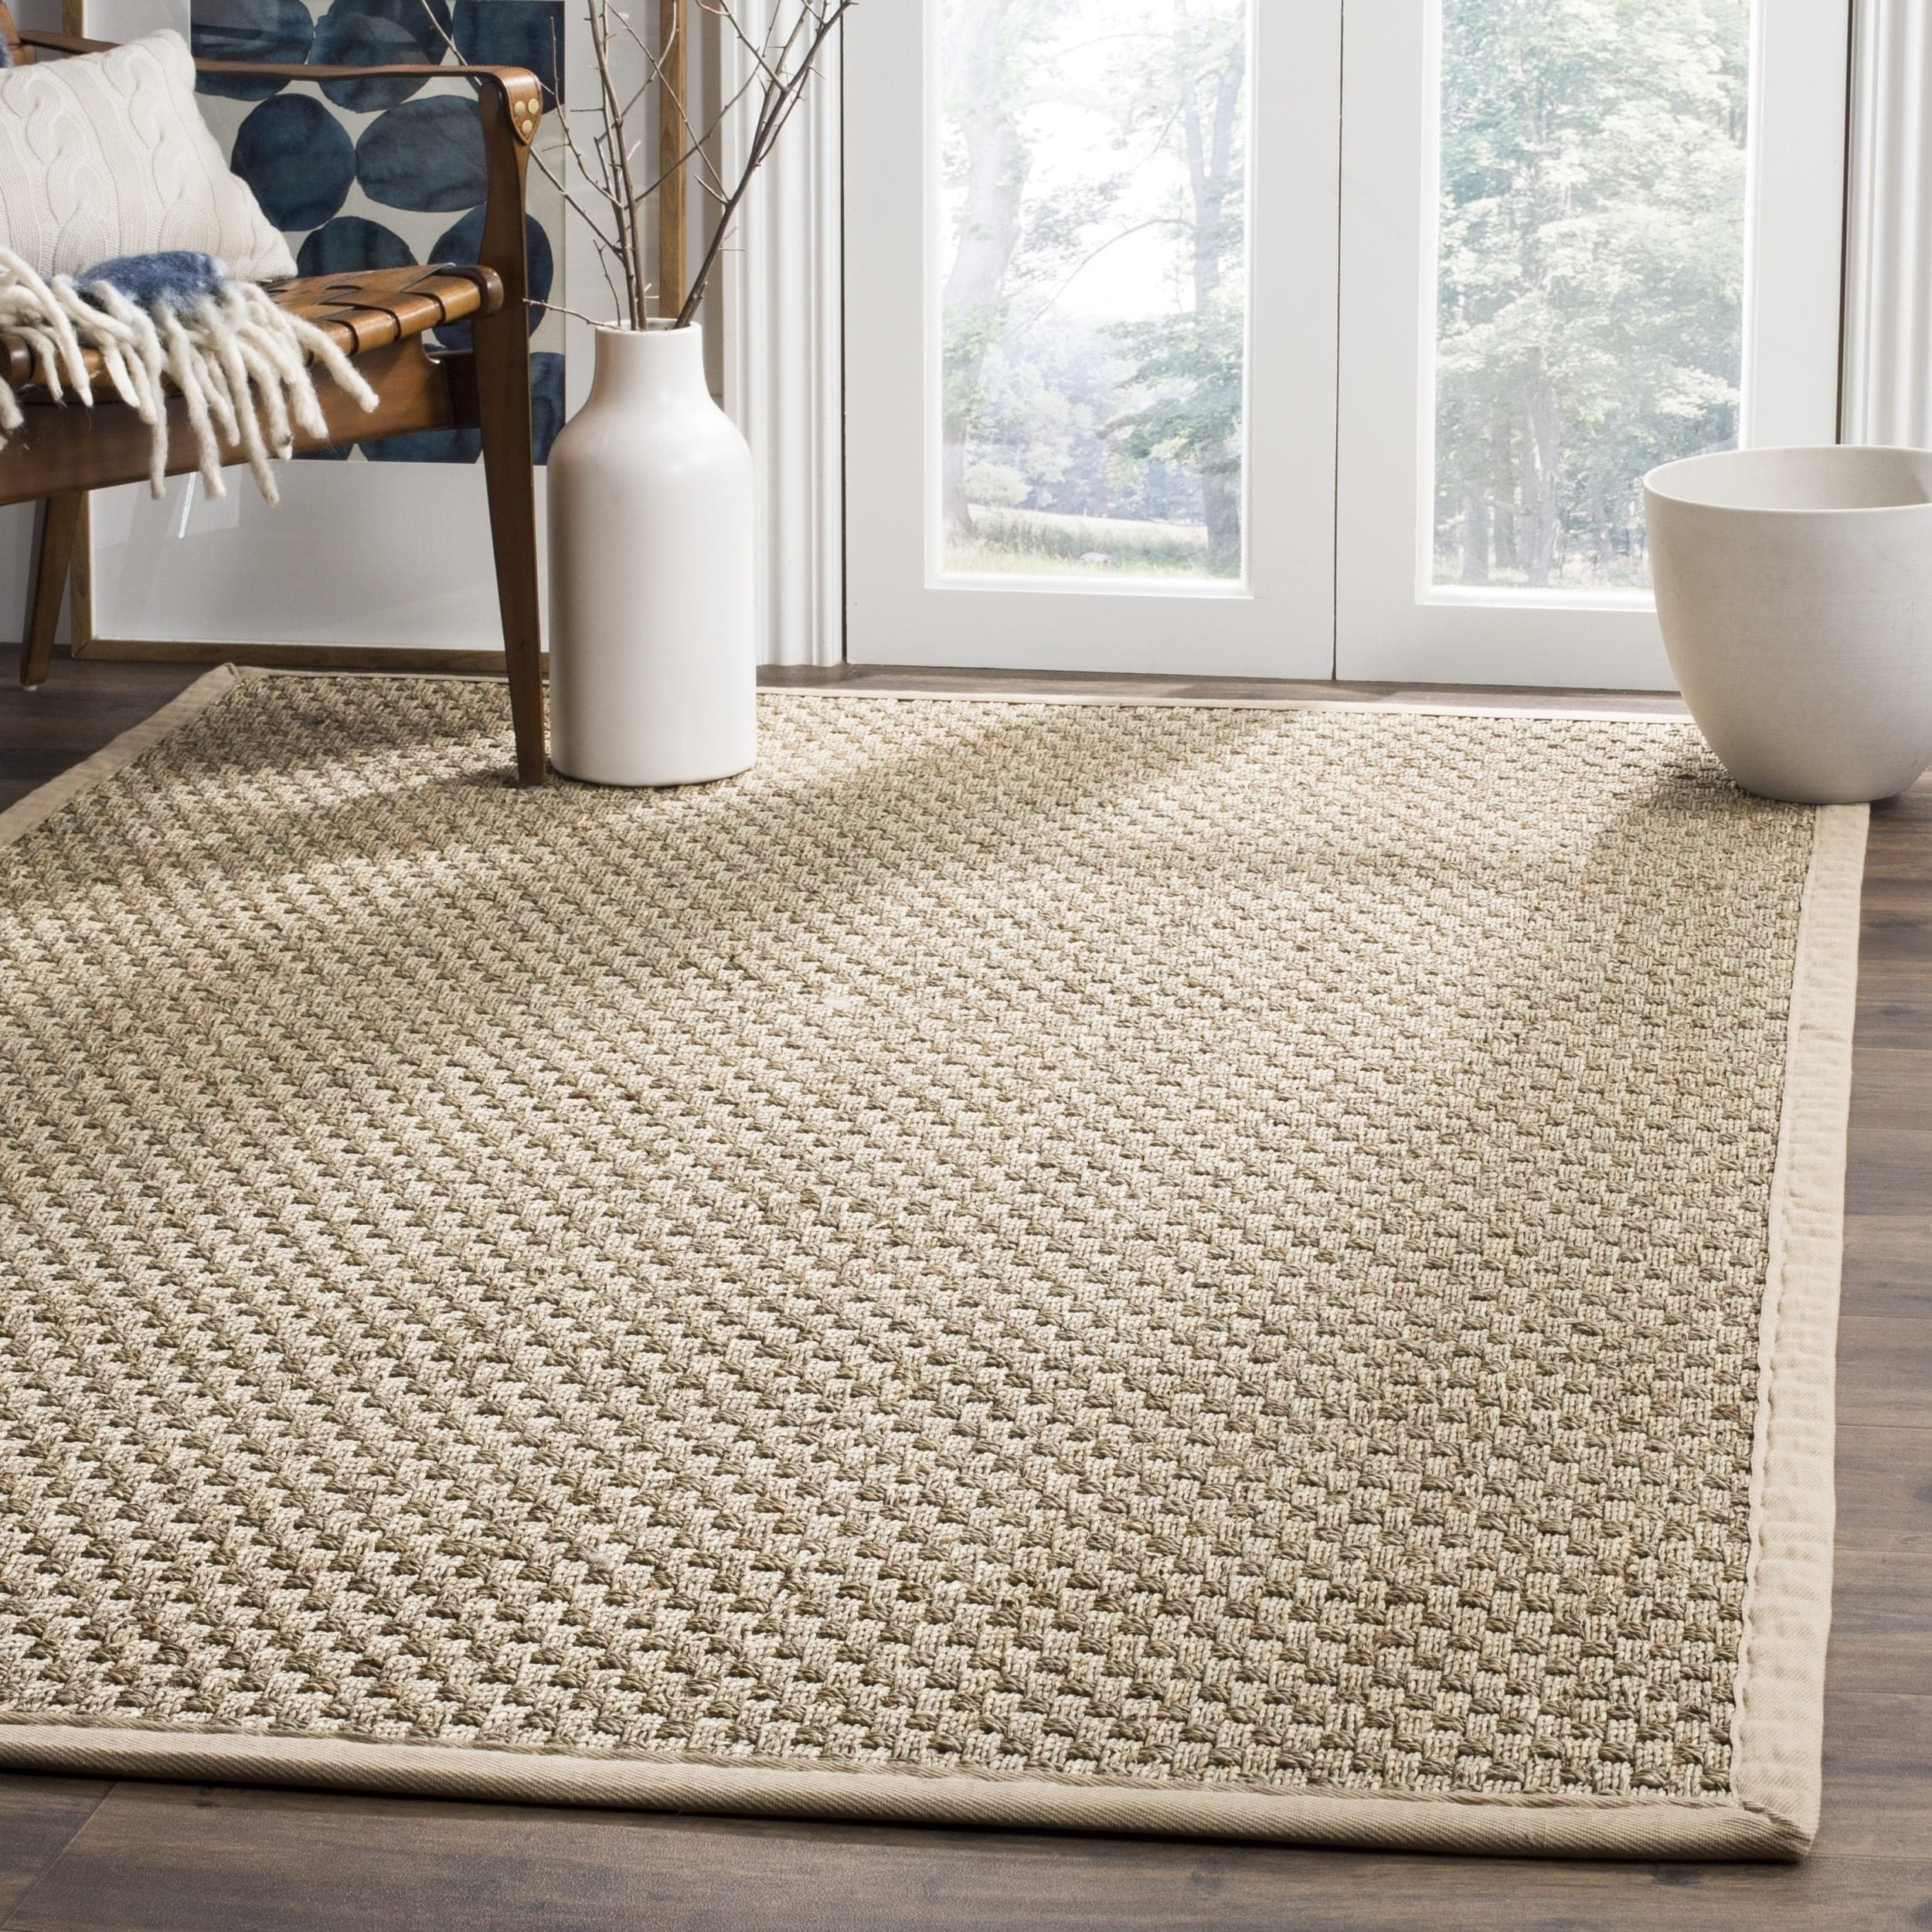 Shop Safavieh Casual Natural Fiber Natural and Beige Border Seagrass ...